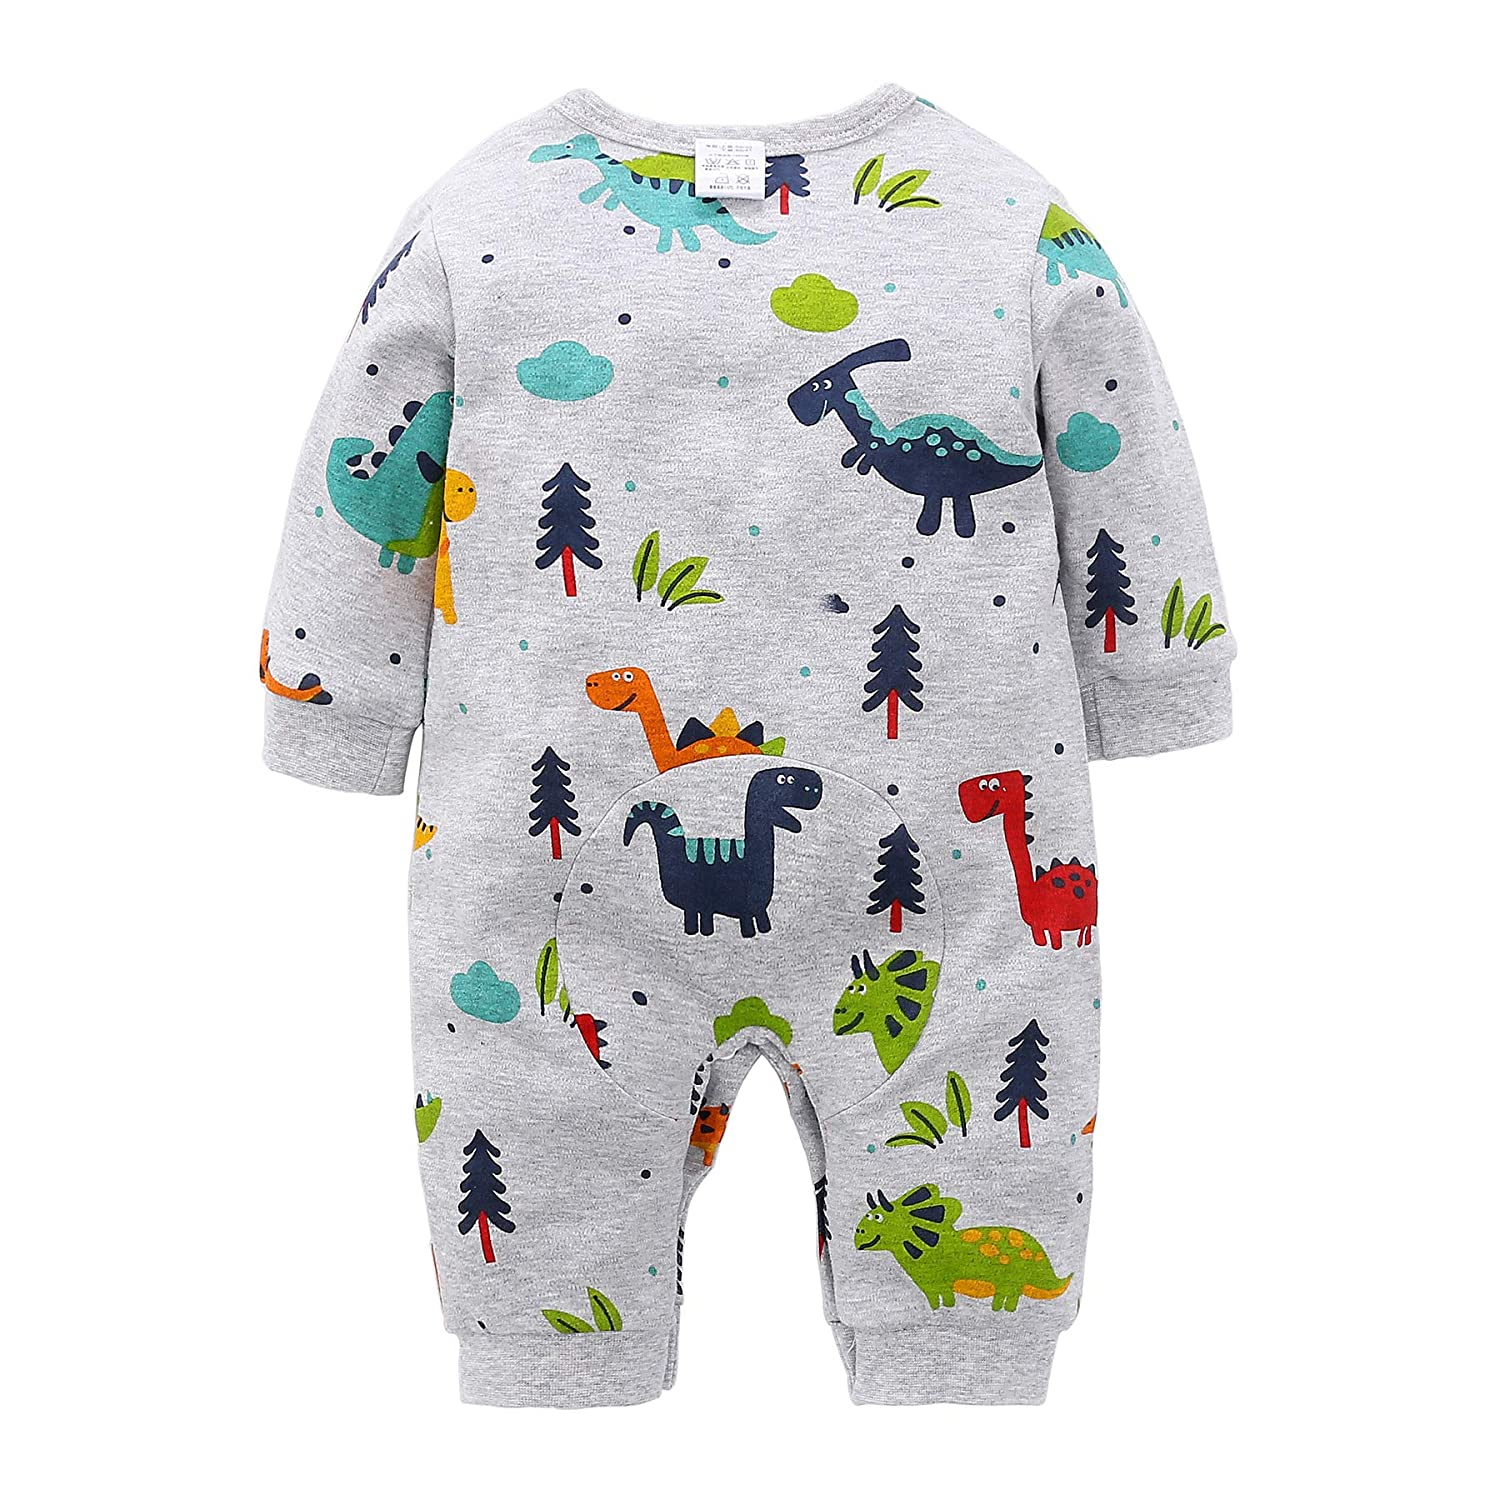 187040b14 Amazon.com: Beal Shopping Newborn Infant Baby Girl Boy Lovely Cartoon  Dinosaur Romper Jumpsuit Outfits Baby Clothes Bodysuit: Clothing